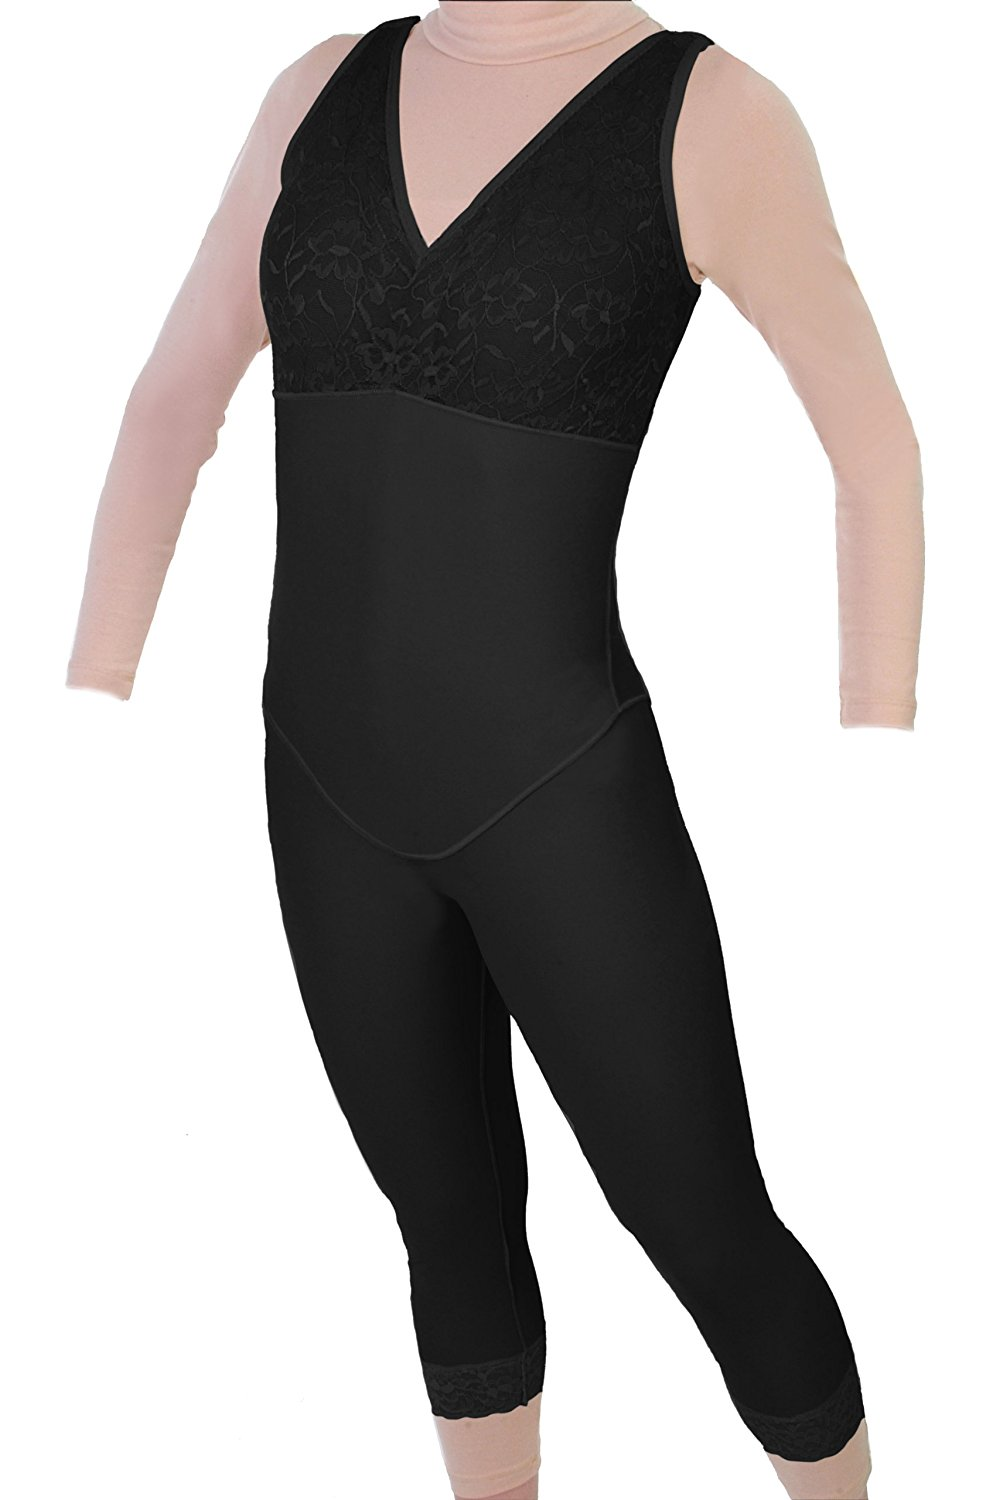 7c0d3107170 ContourMD Style 28NZ - Mid Calf Body Shaper Without Zippers by Contour